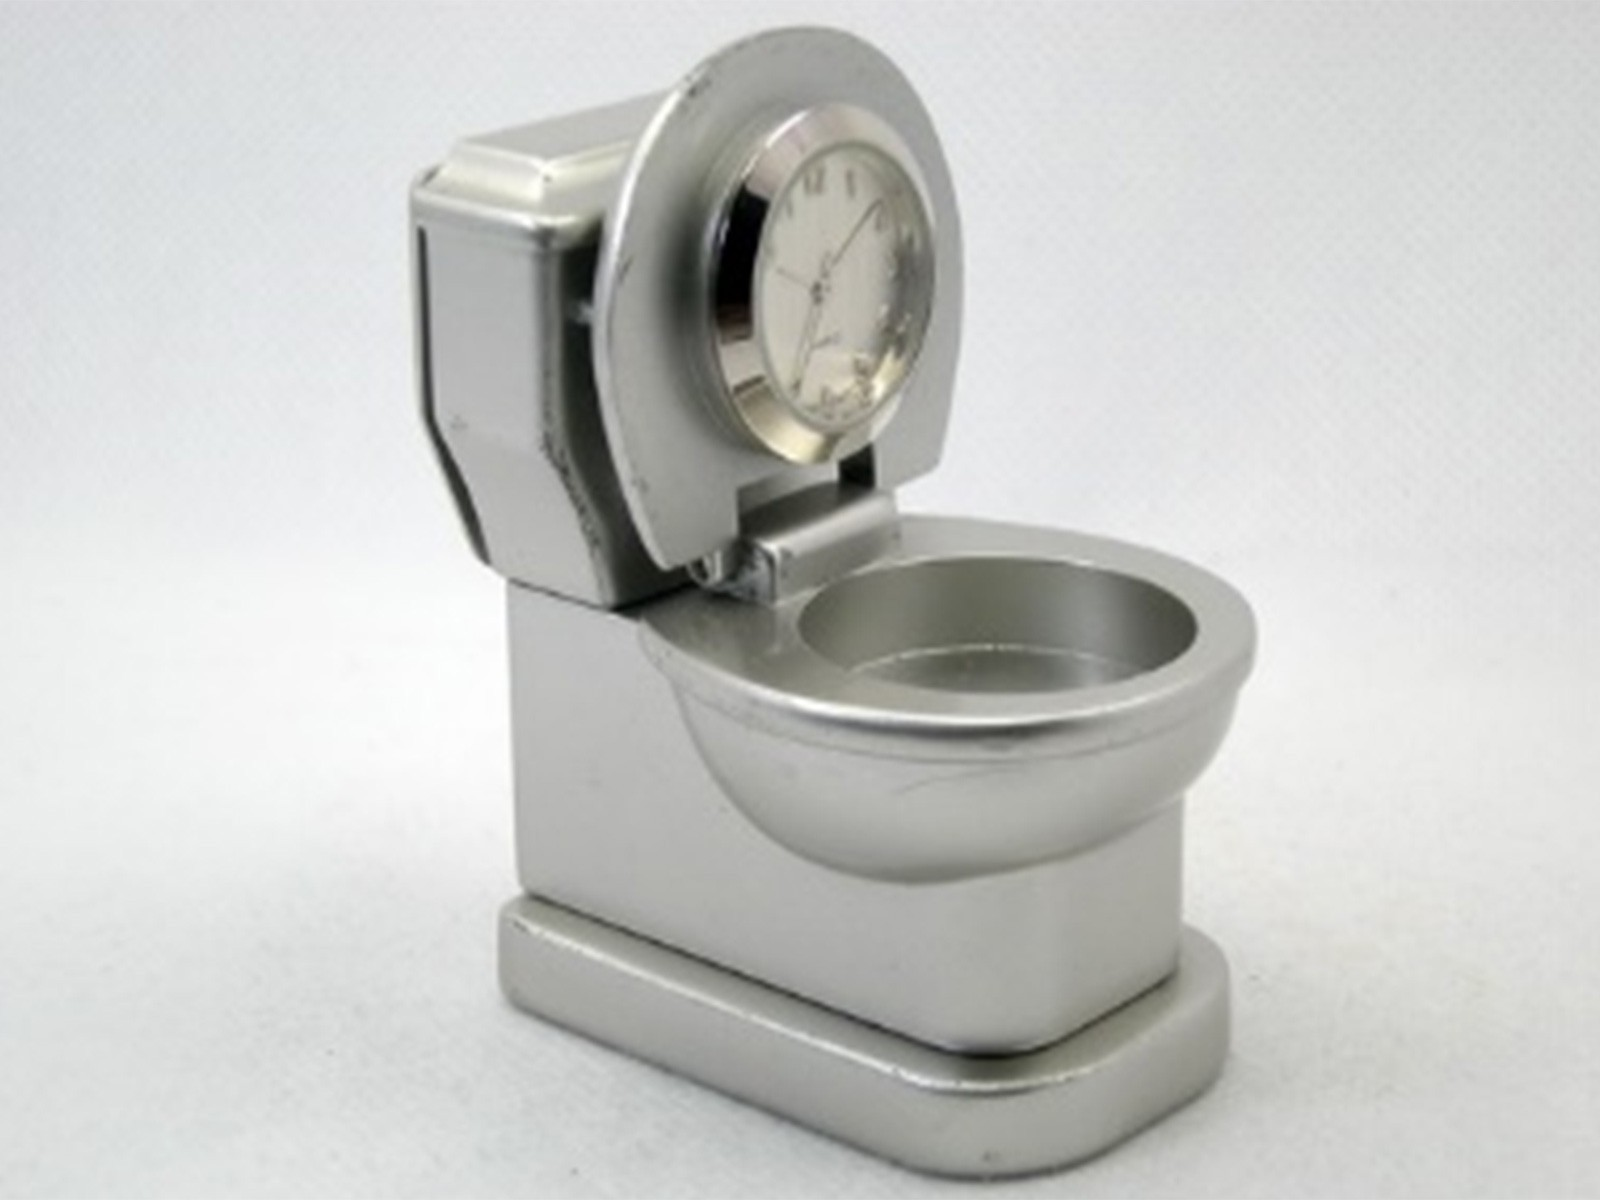 Toilet Miniature Clock